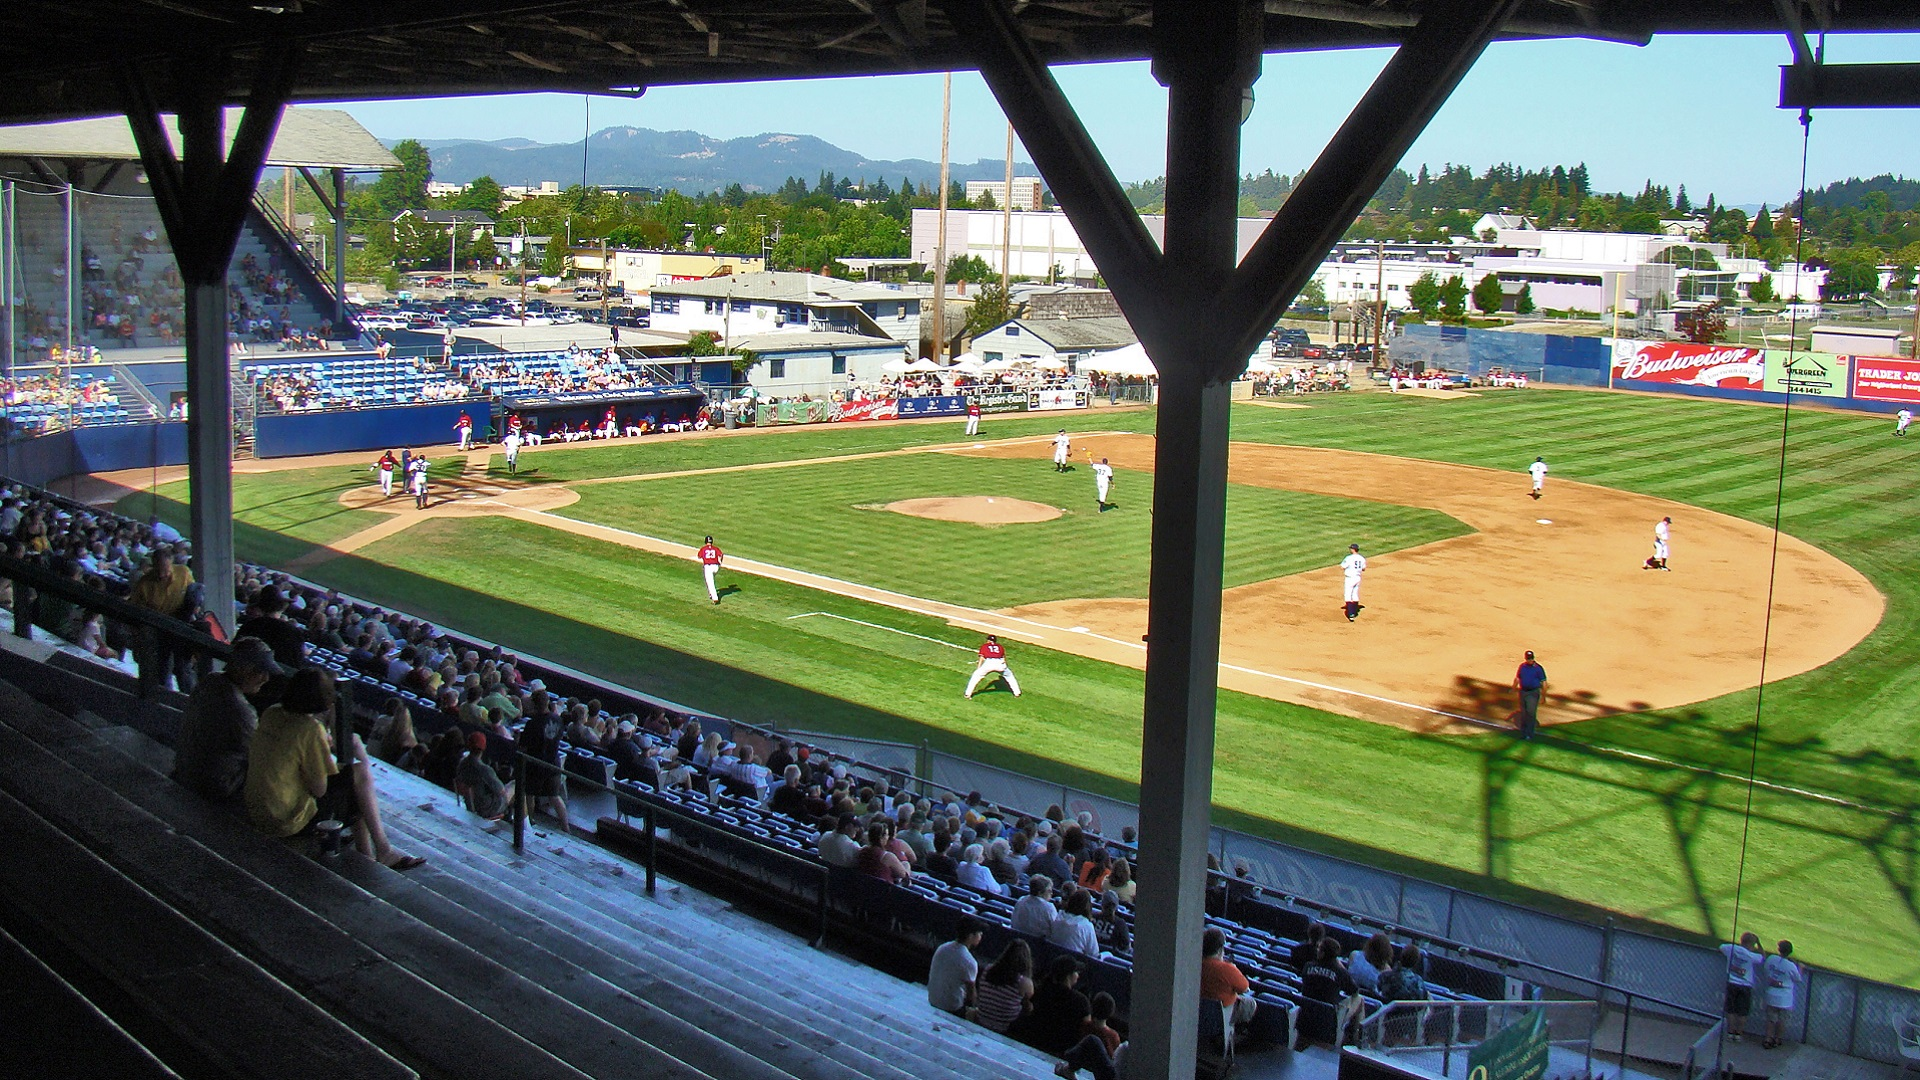 Former Eugene Emeralds are mourning the loss of Civic Stadium